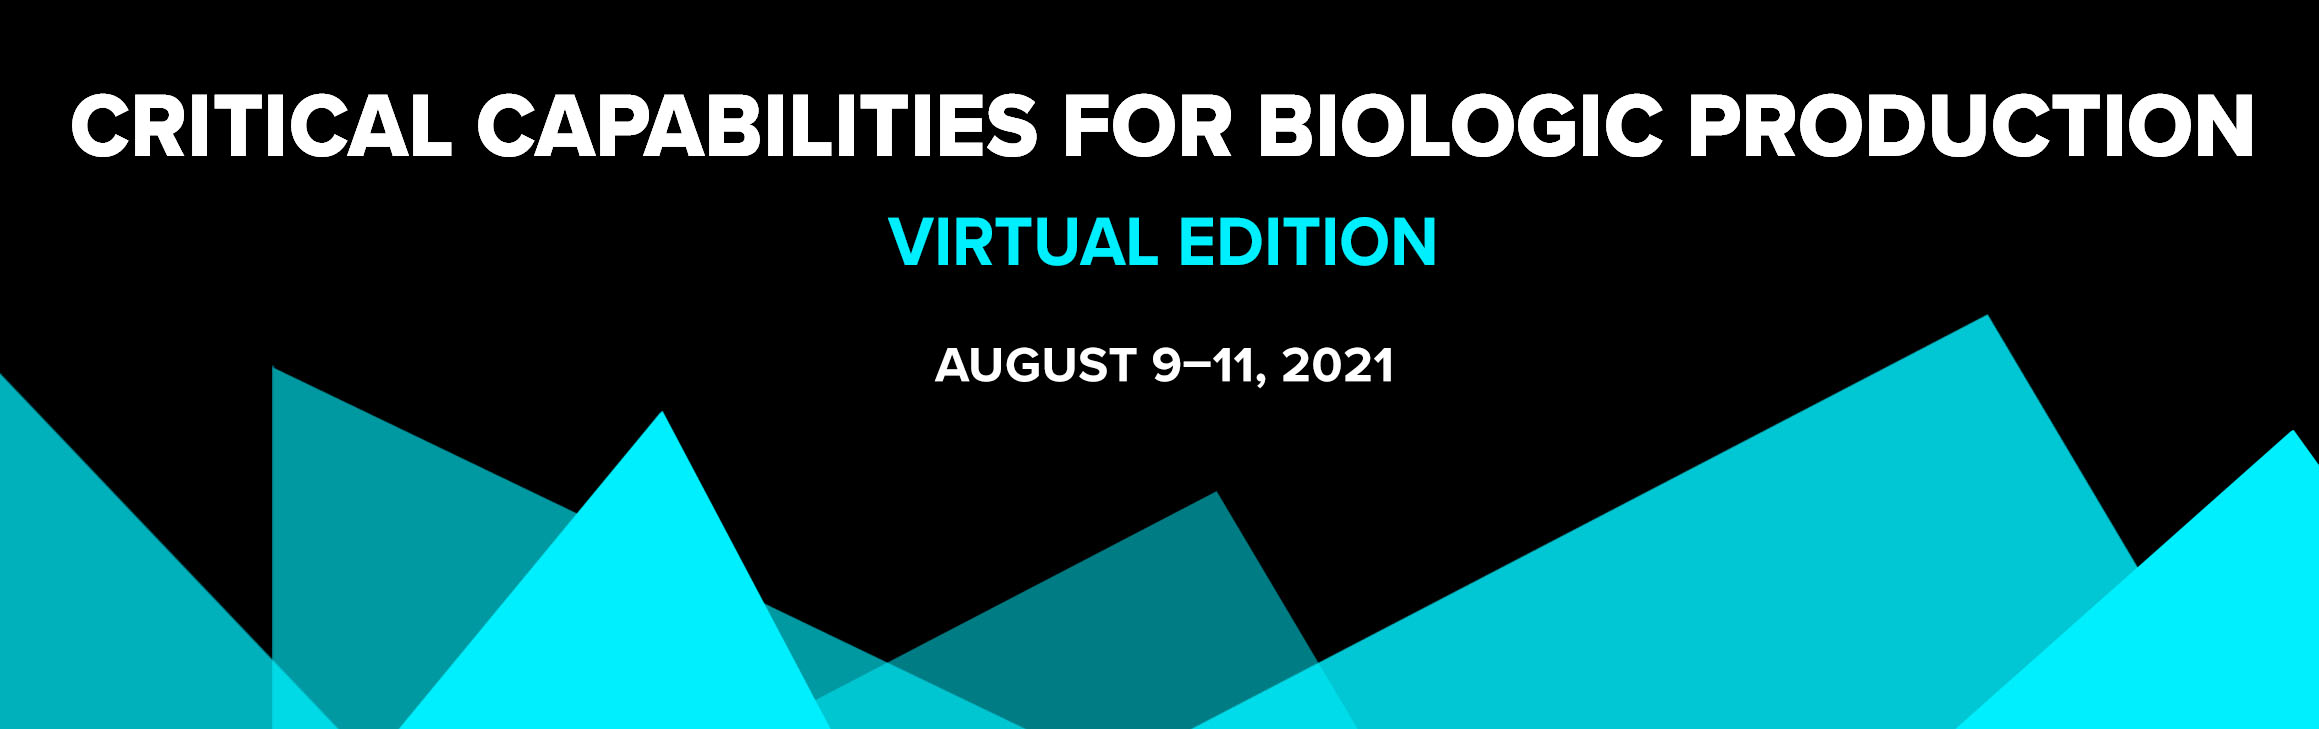 Critical Capabilities for Biologic Production